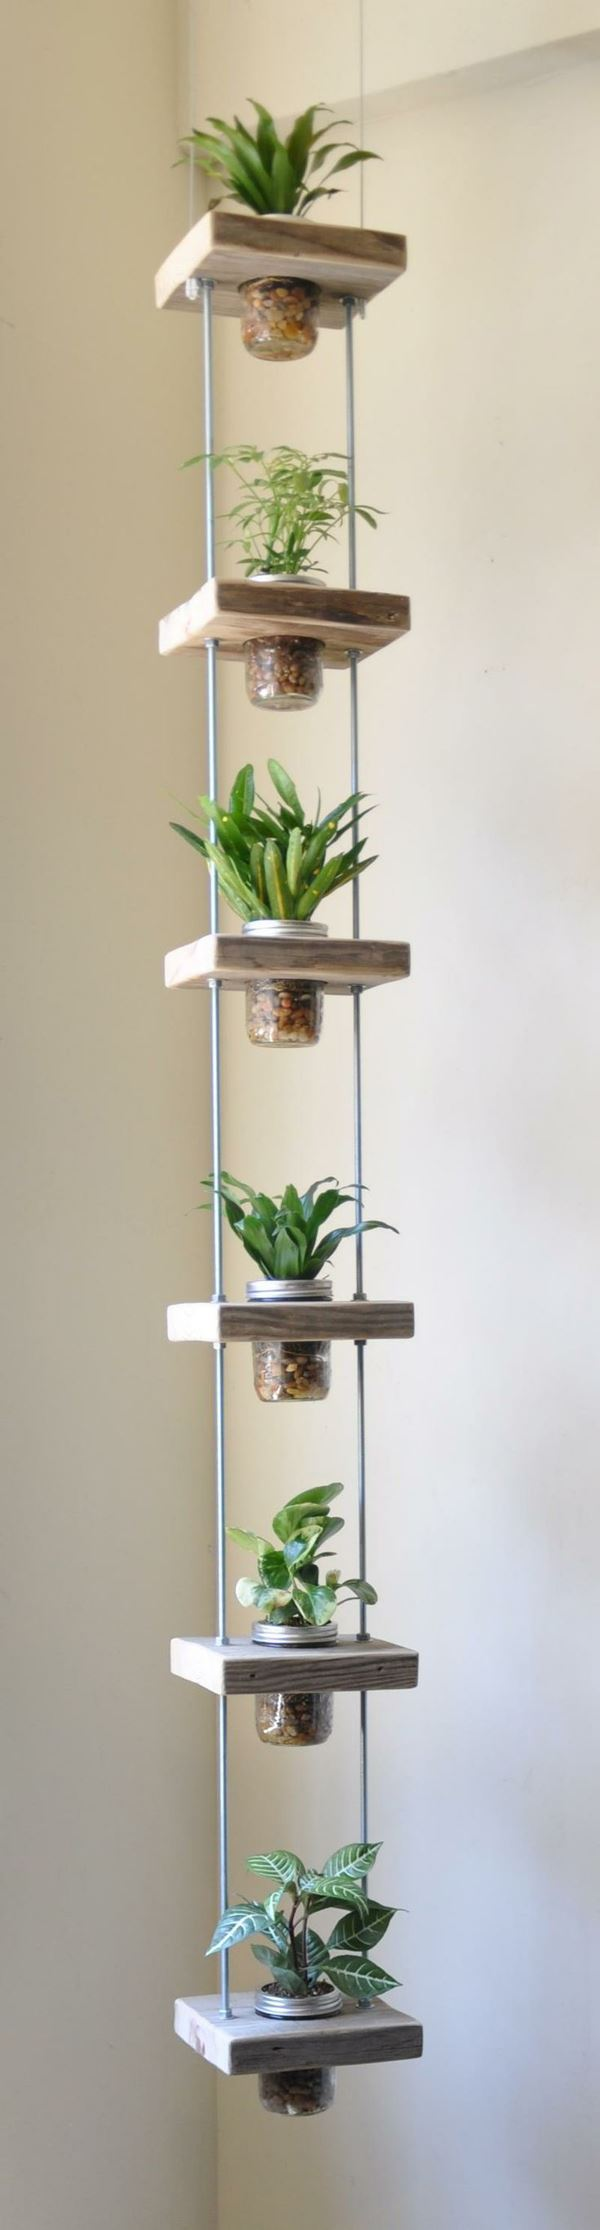 Flowerpot made of jar hanging from the ceiling